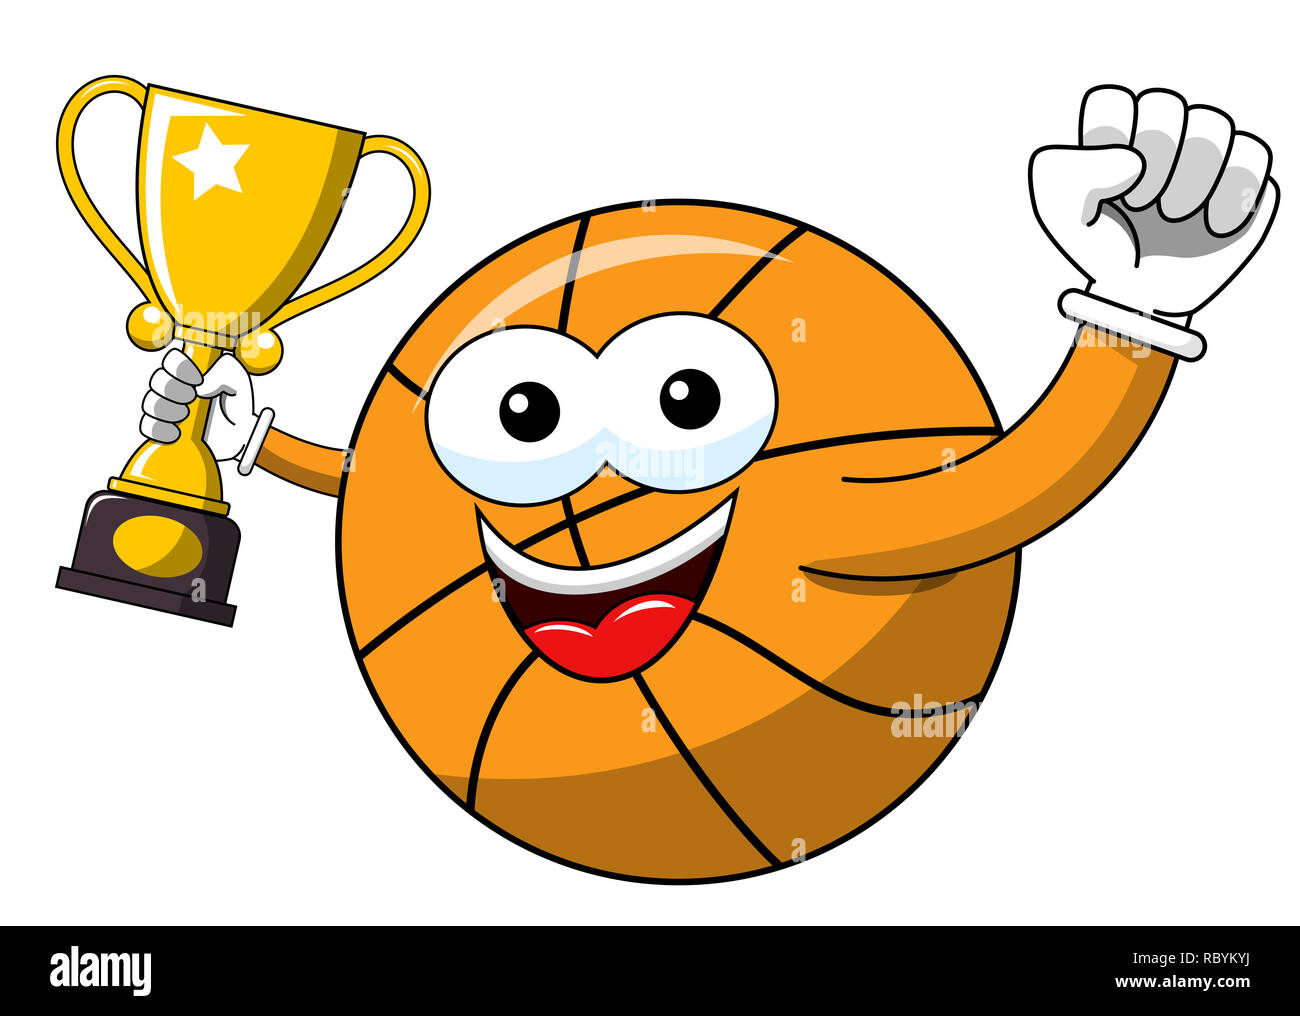 Basketball Ball Cartoon Funny Cup Winner Character Isolated On White Stock Photo Alamy